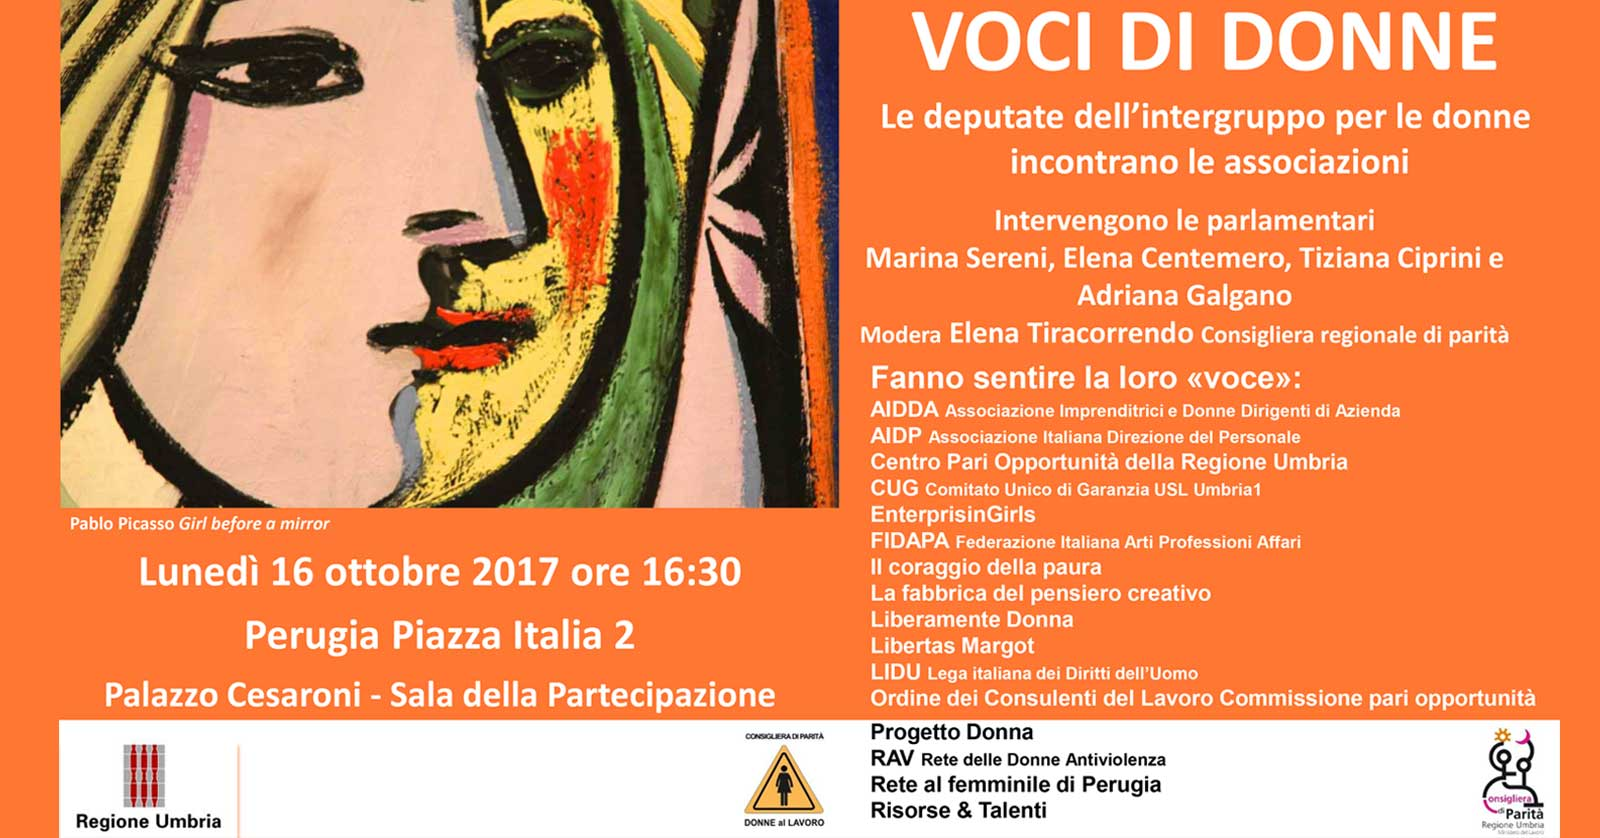 Enterprisingirls presente a VOCI DI DONNE